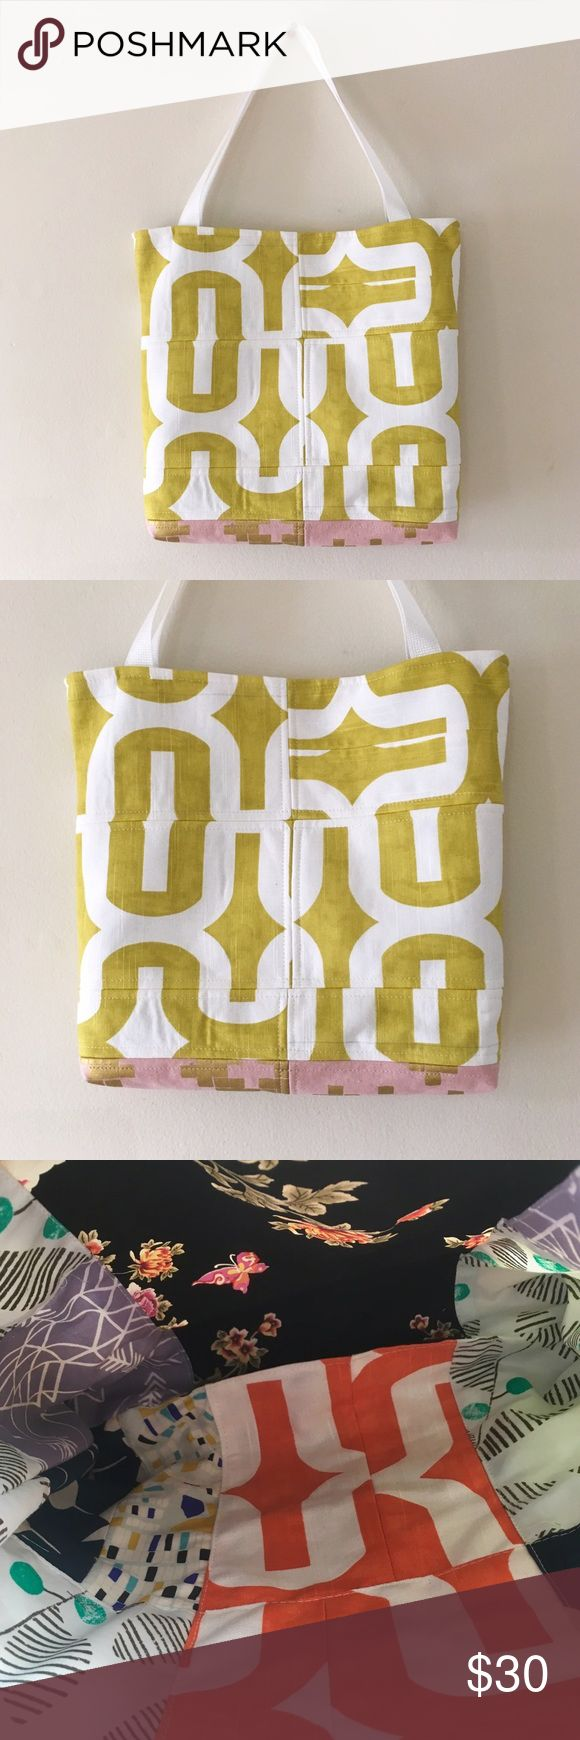 🆕Yellow and Pink Geometric Tote Bag - HANDMADE Cute tote bag made of different patterns made by my father. The dimensions are 13 inches tall by 15 inches wide. Fleece fusible to keep shape. The last photo is of the inside. Urban Outfitters Bags Totes